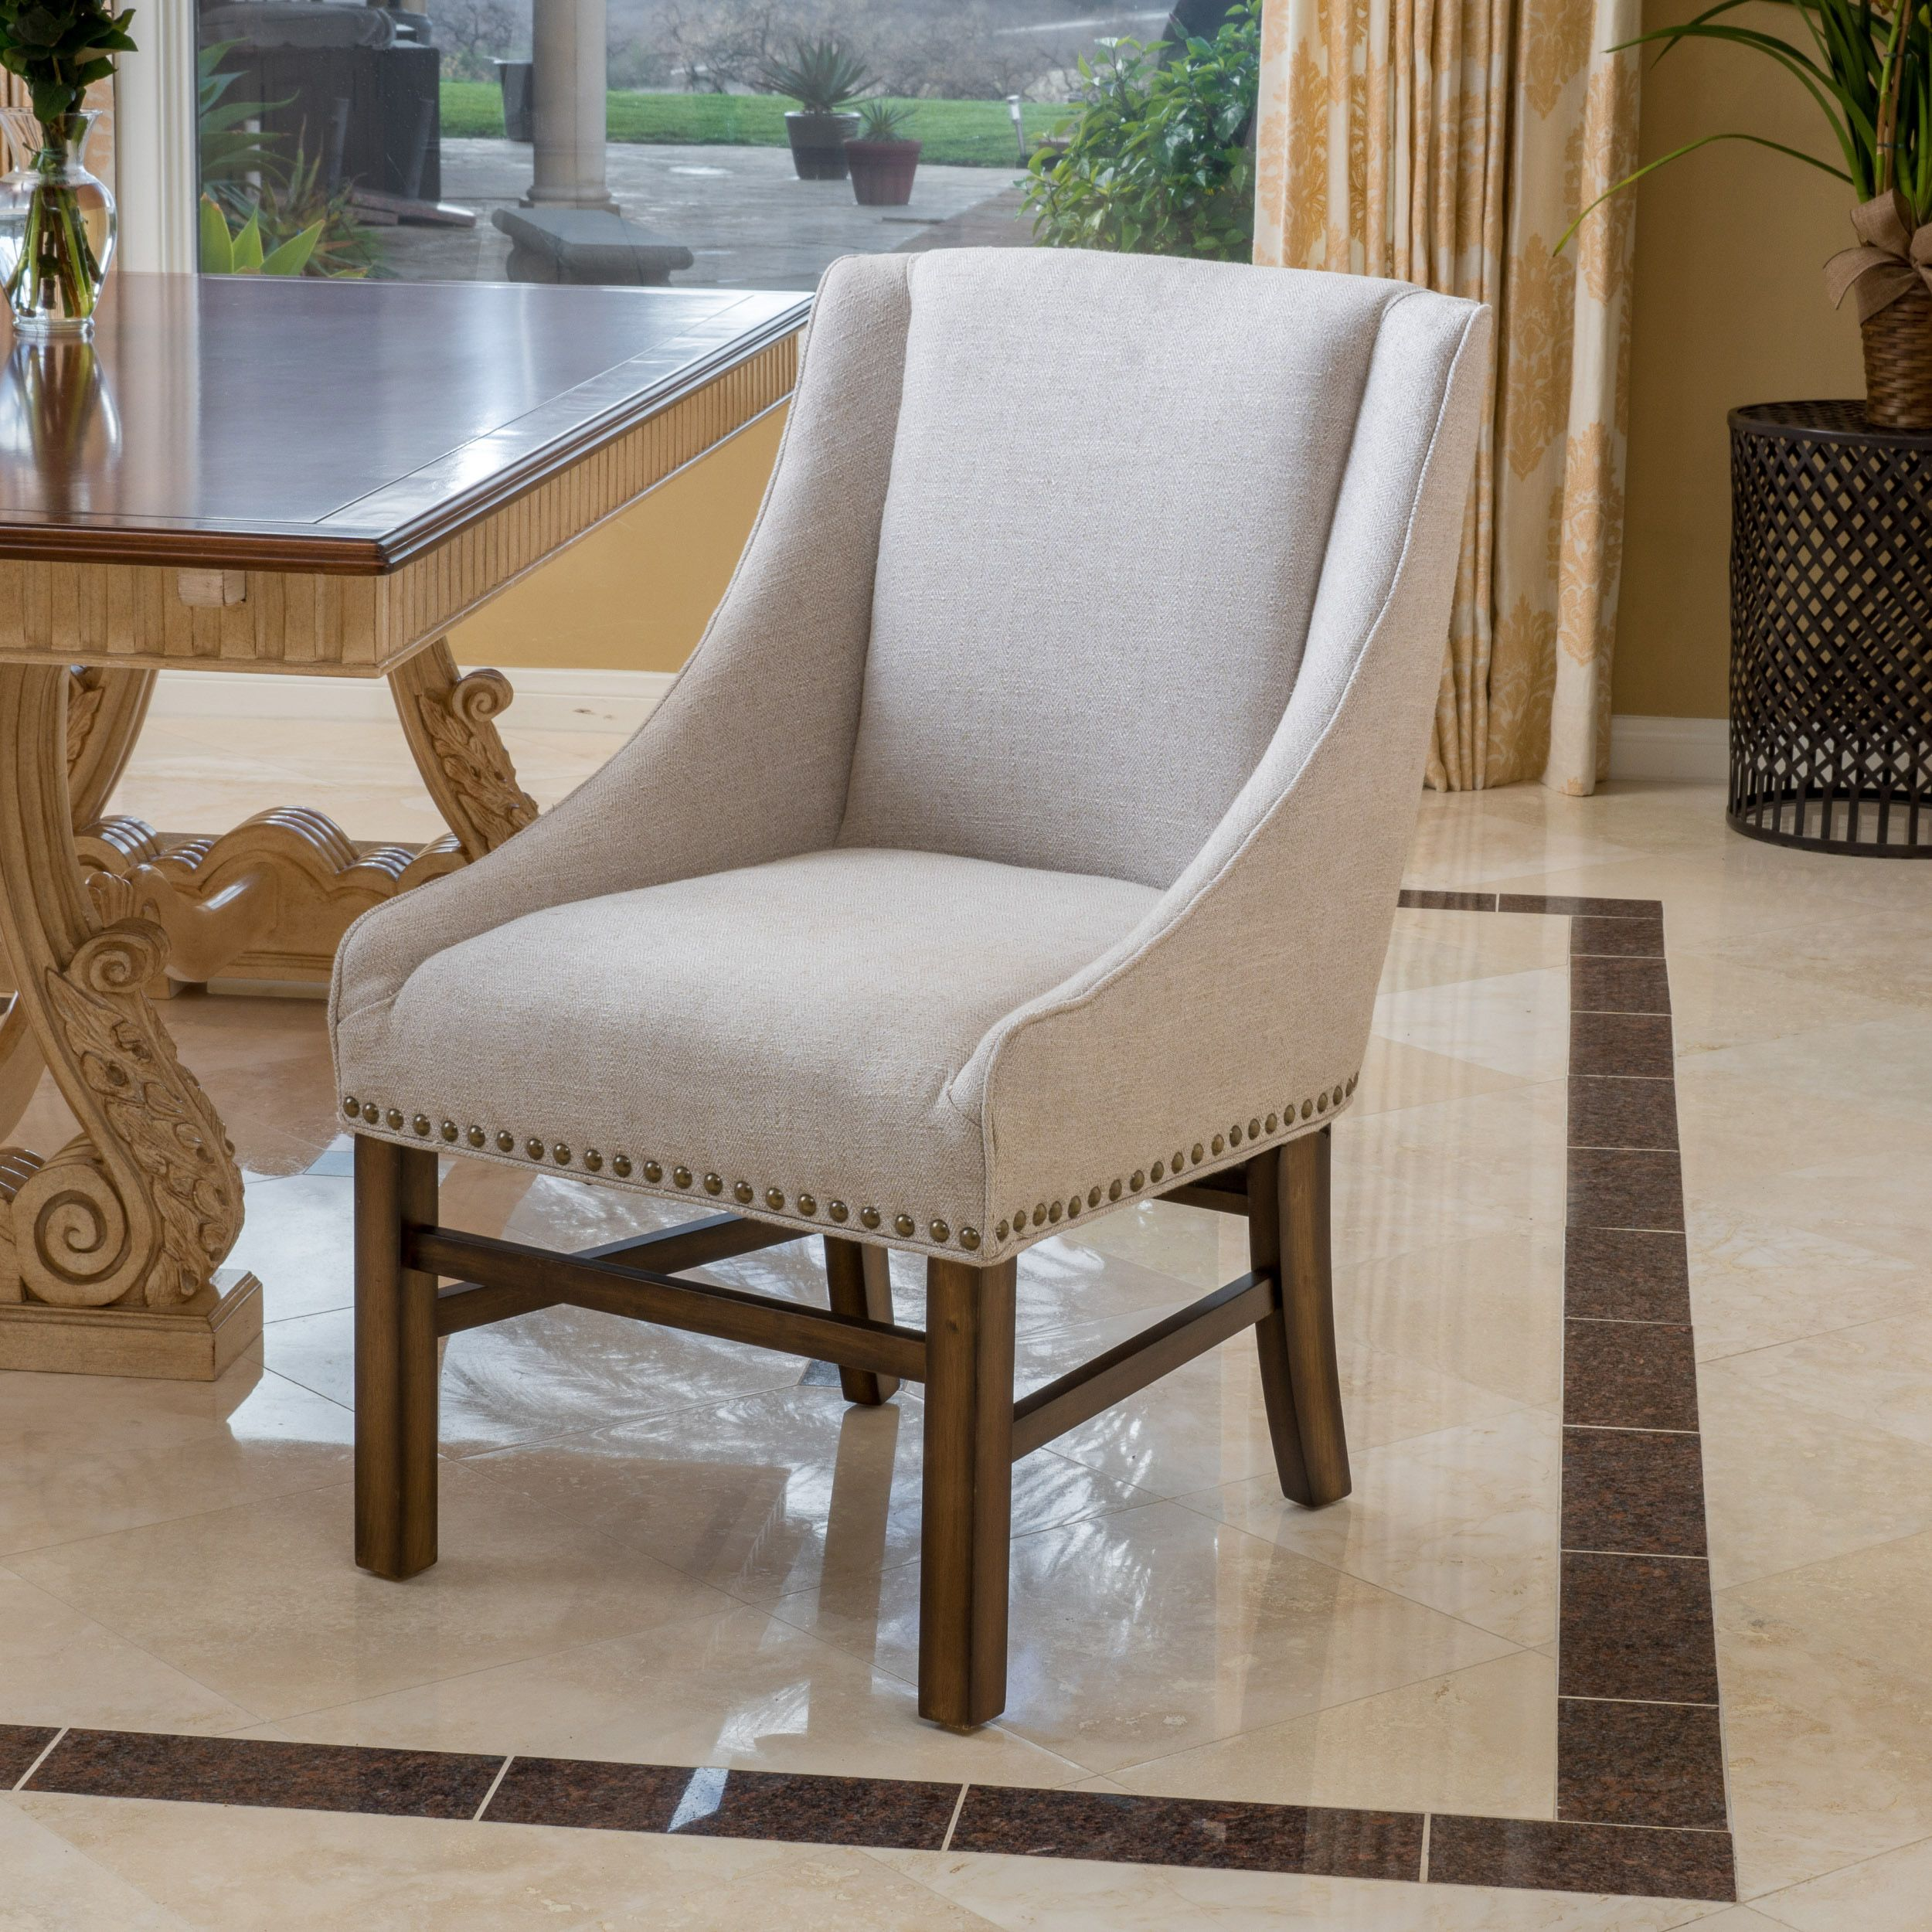 Swell Noble House Jordan Natural Fabric Dining Chair Color Natural Machost Co Dining Chair Design Ideas Machostcouk